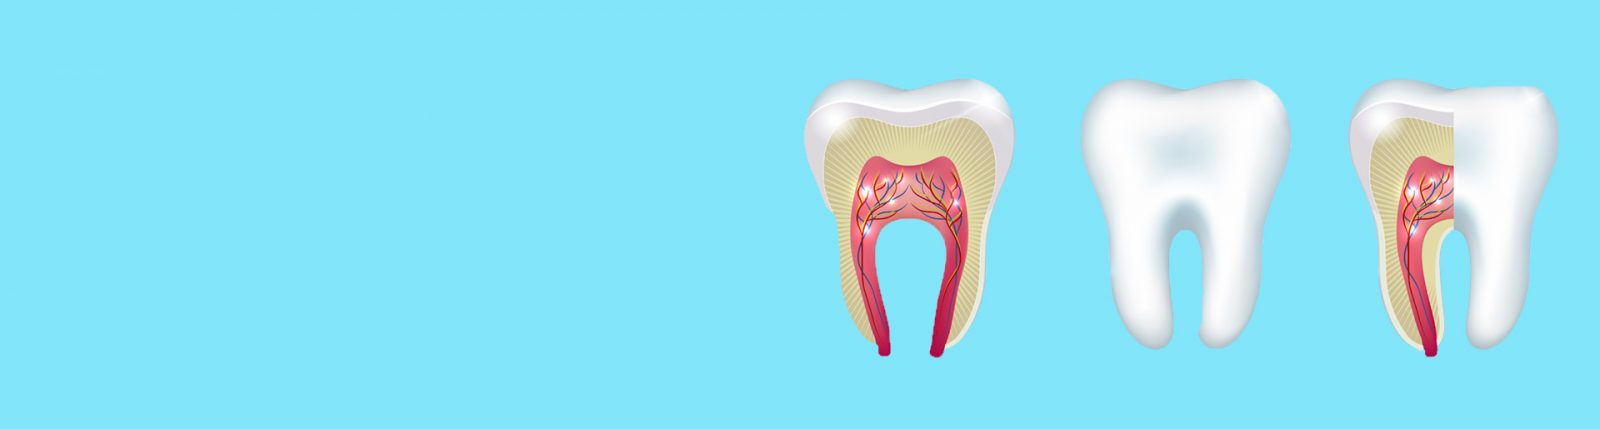 vector image of transverse dissection of tooth to show root